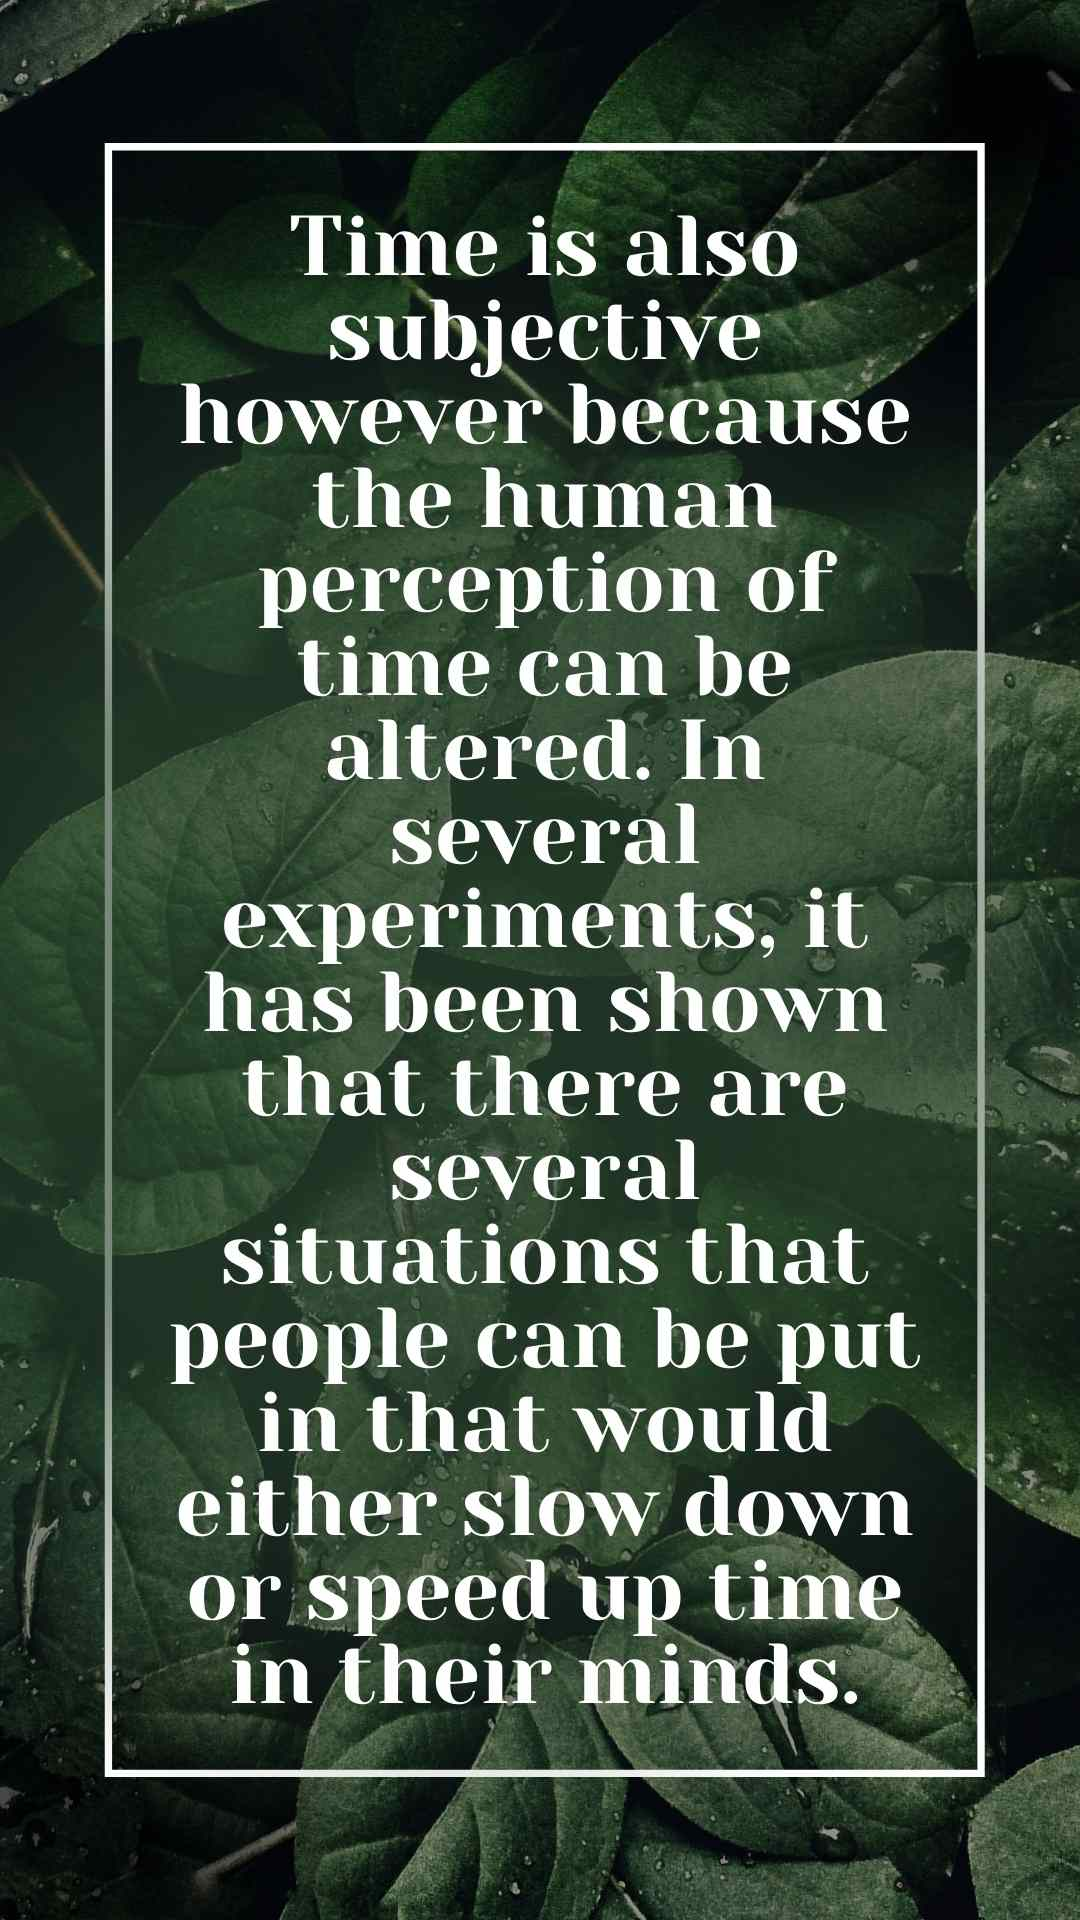 Time is also subjective however because the human perception of time can be altered. In several experiments, it has been shown that there are several situations that people can be put in that would either slow down or speed up time in their minds.